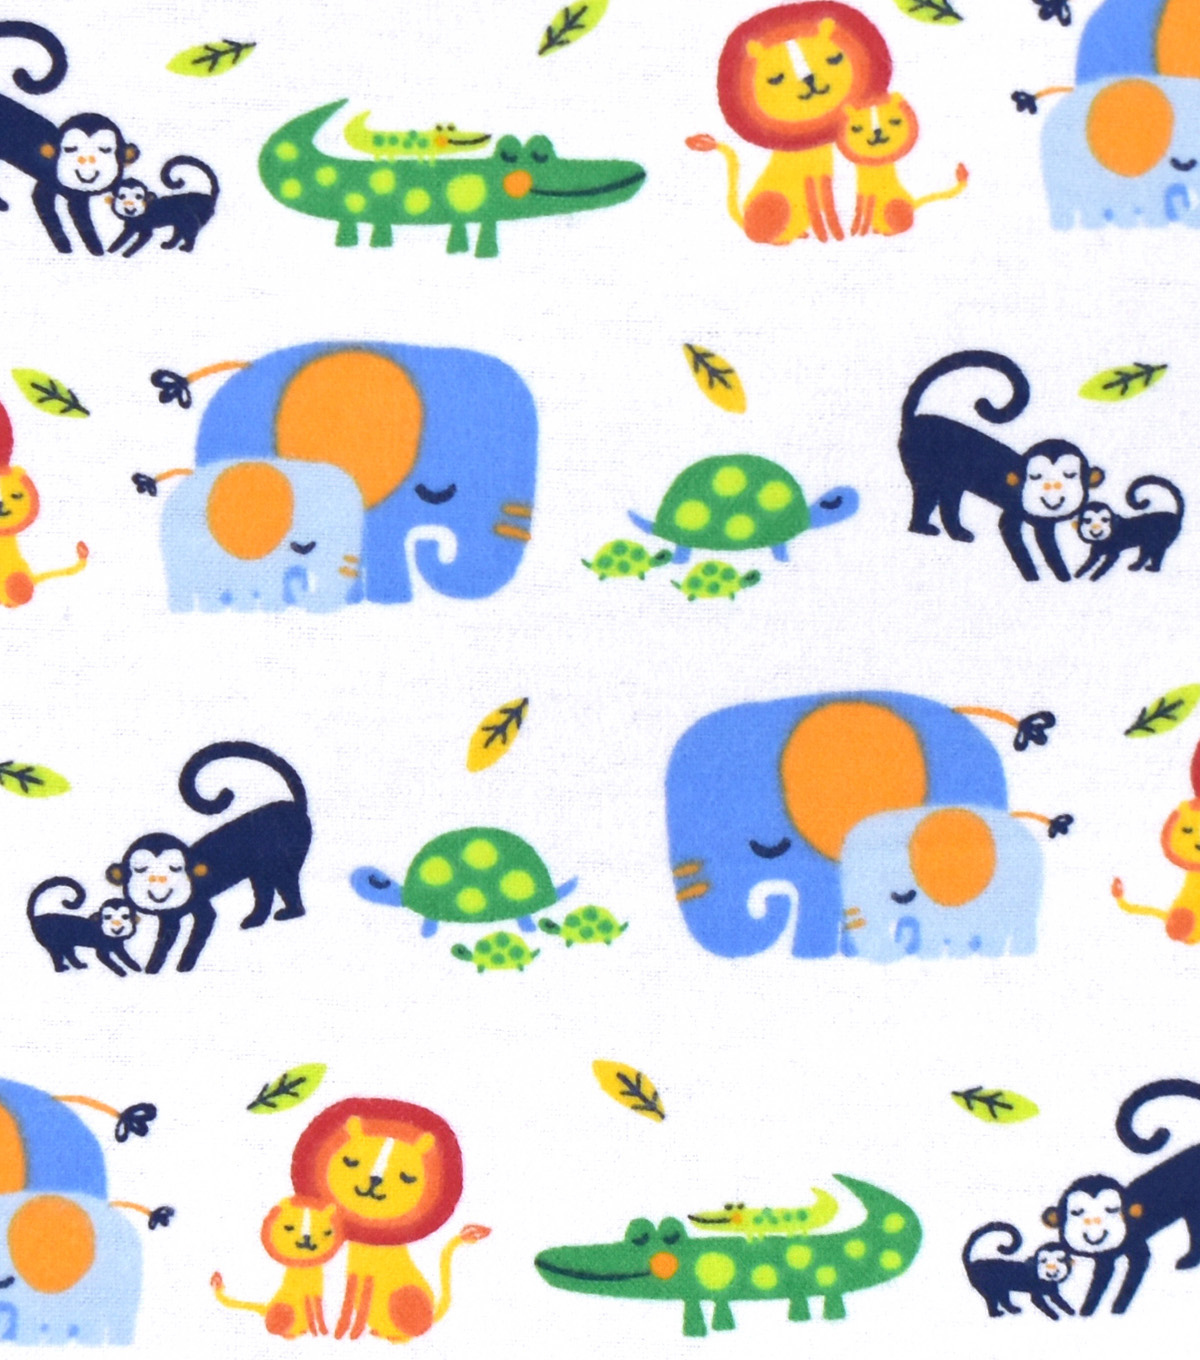 Nursery Flannel Fabric -Bright Jungle 2 By 2